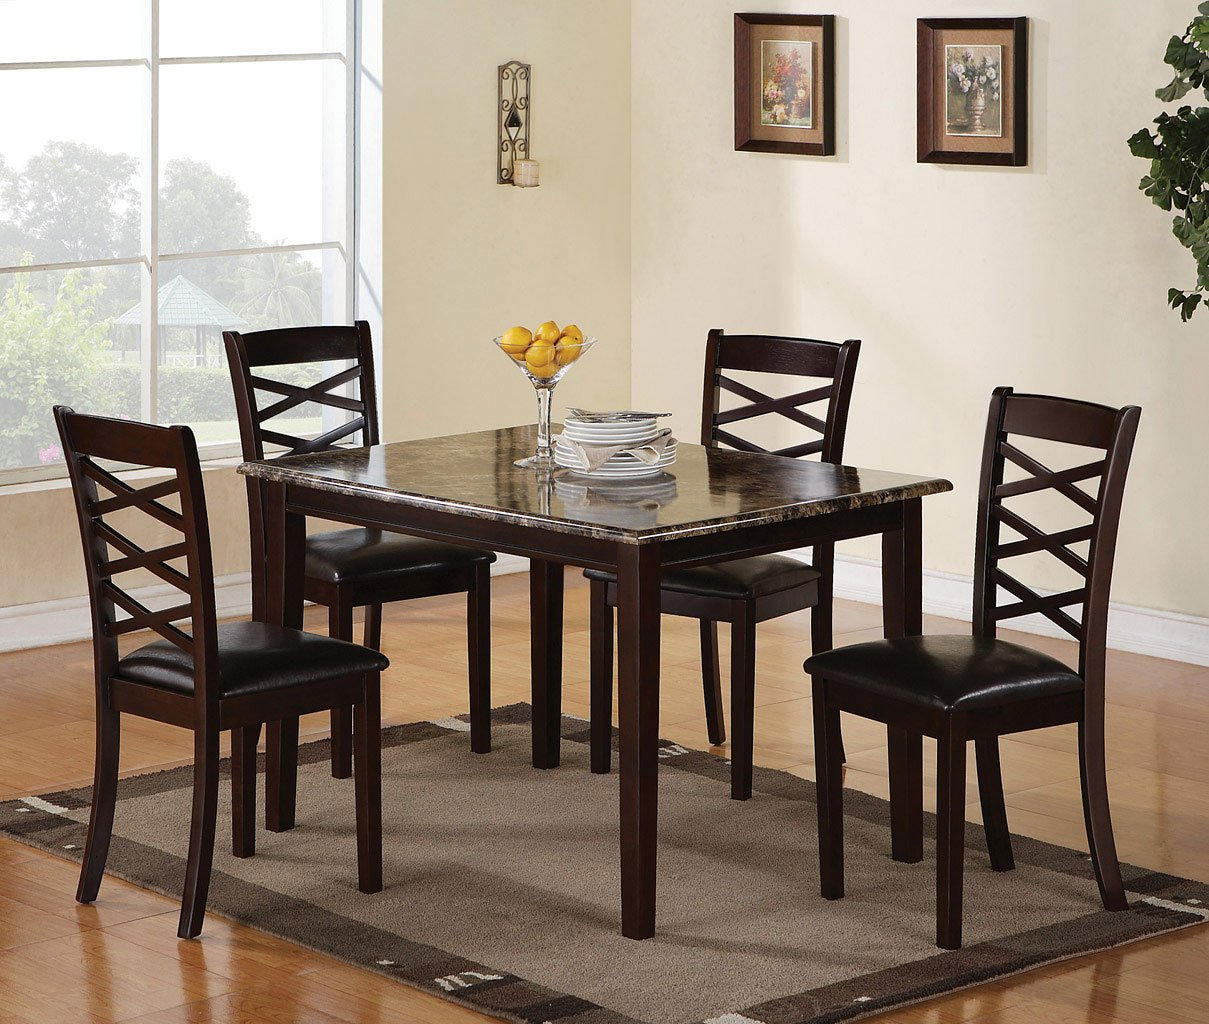 Dining Room Sets 5 Piece: Merlot 5-Piece Dining Room Set By Coaster Furniture